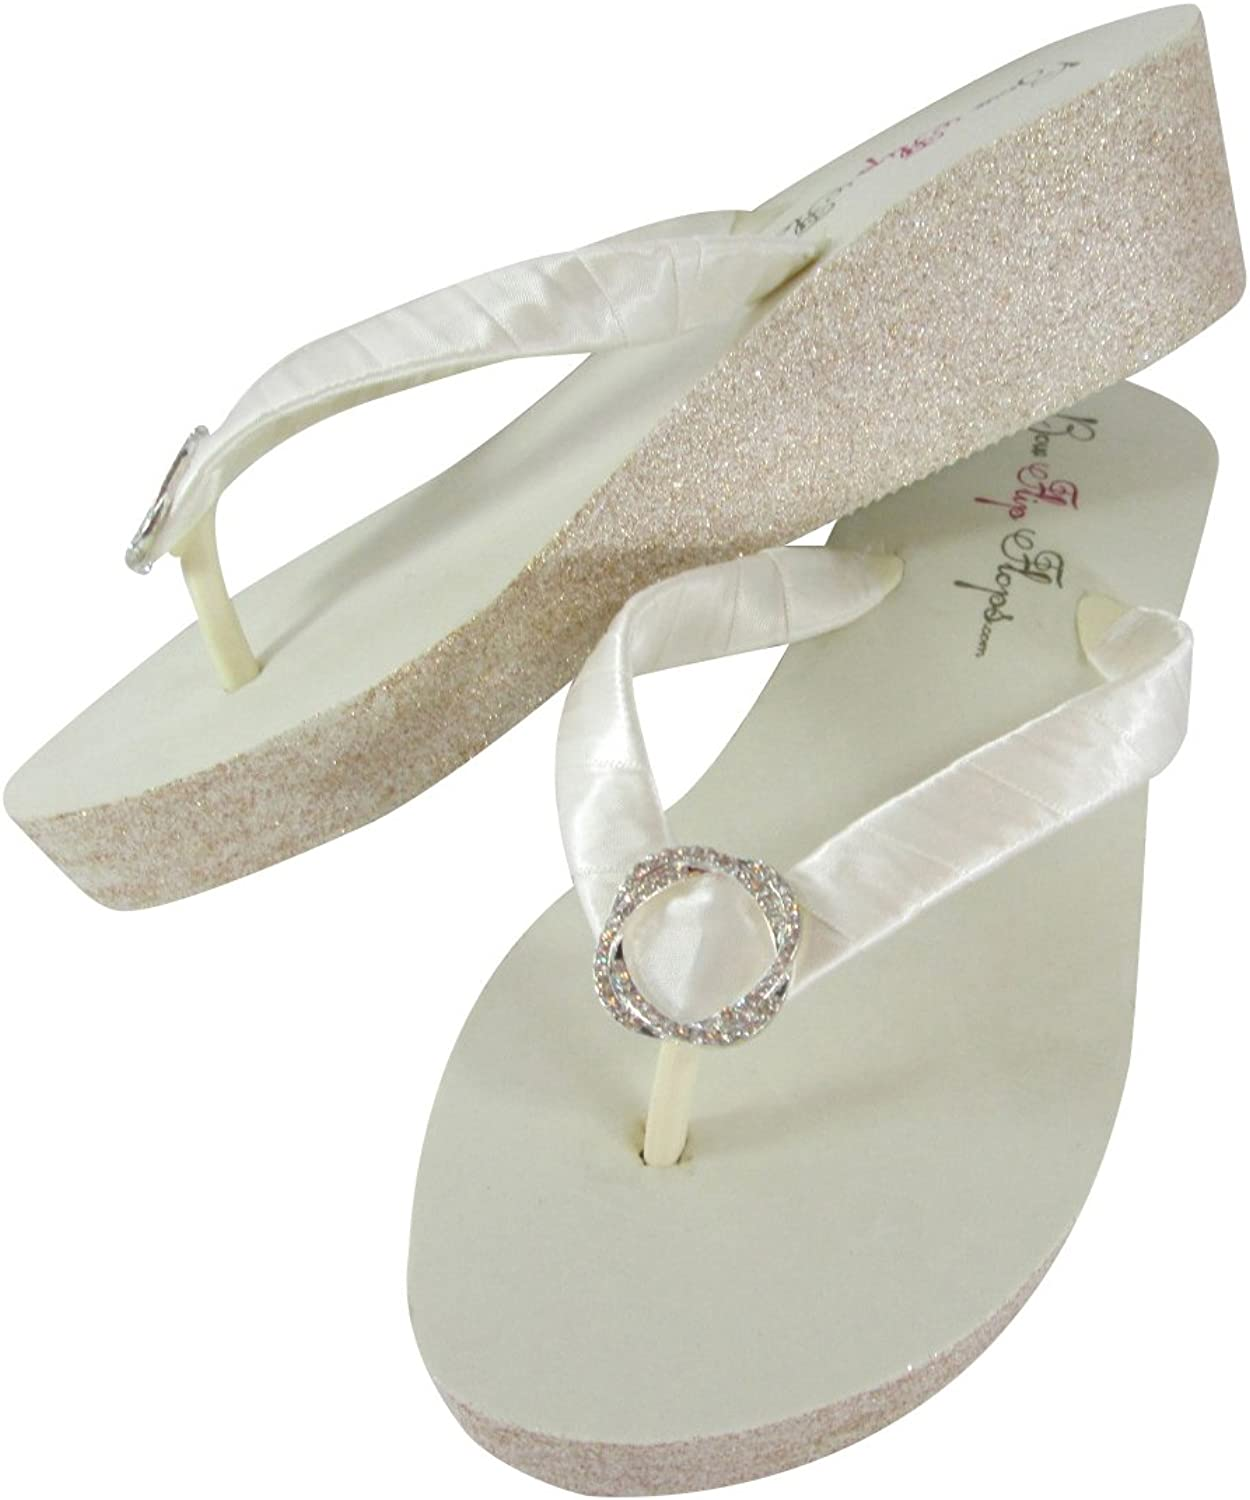 Infinity Circle Champagne and Ivory Glitter Wedge Flip Flops for The Wedding Bride Bling